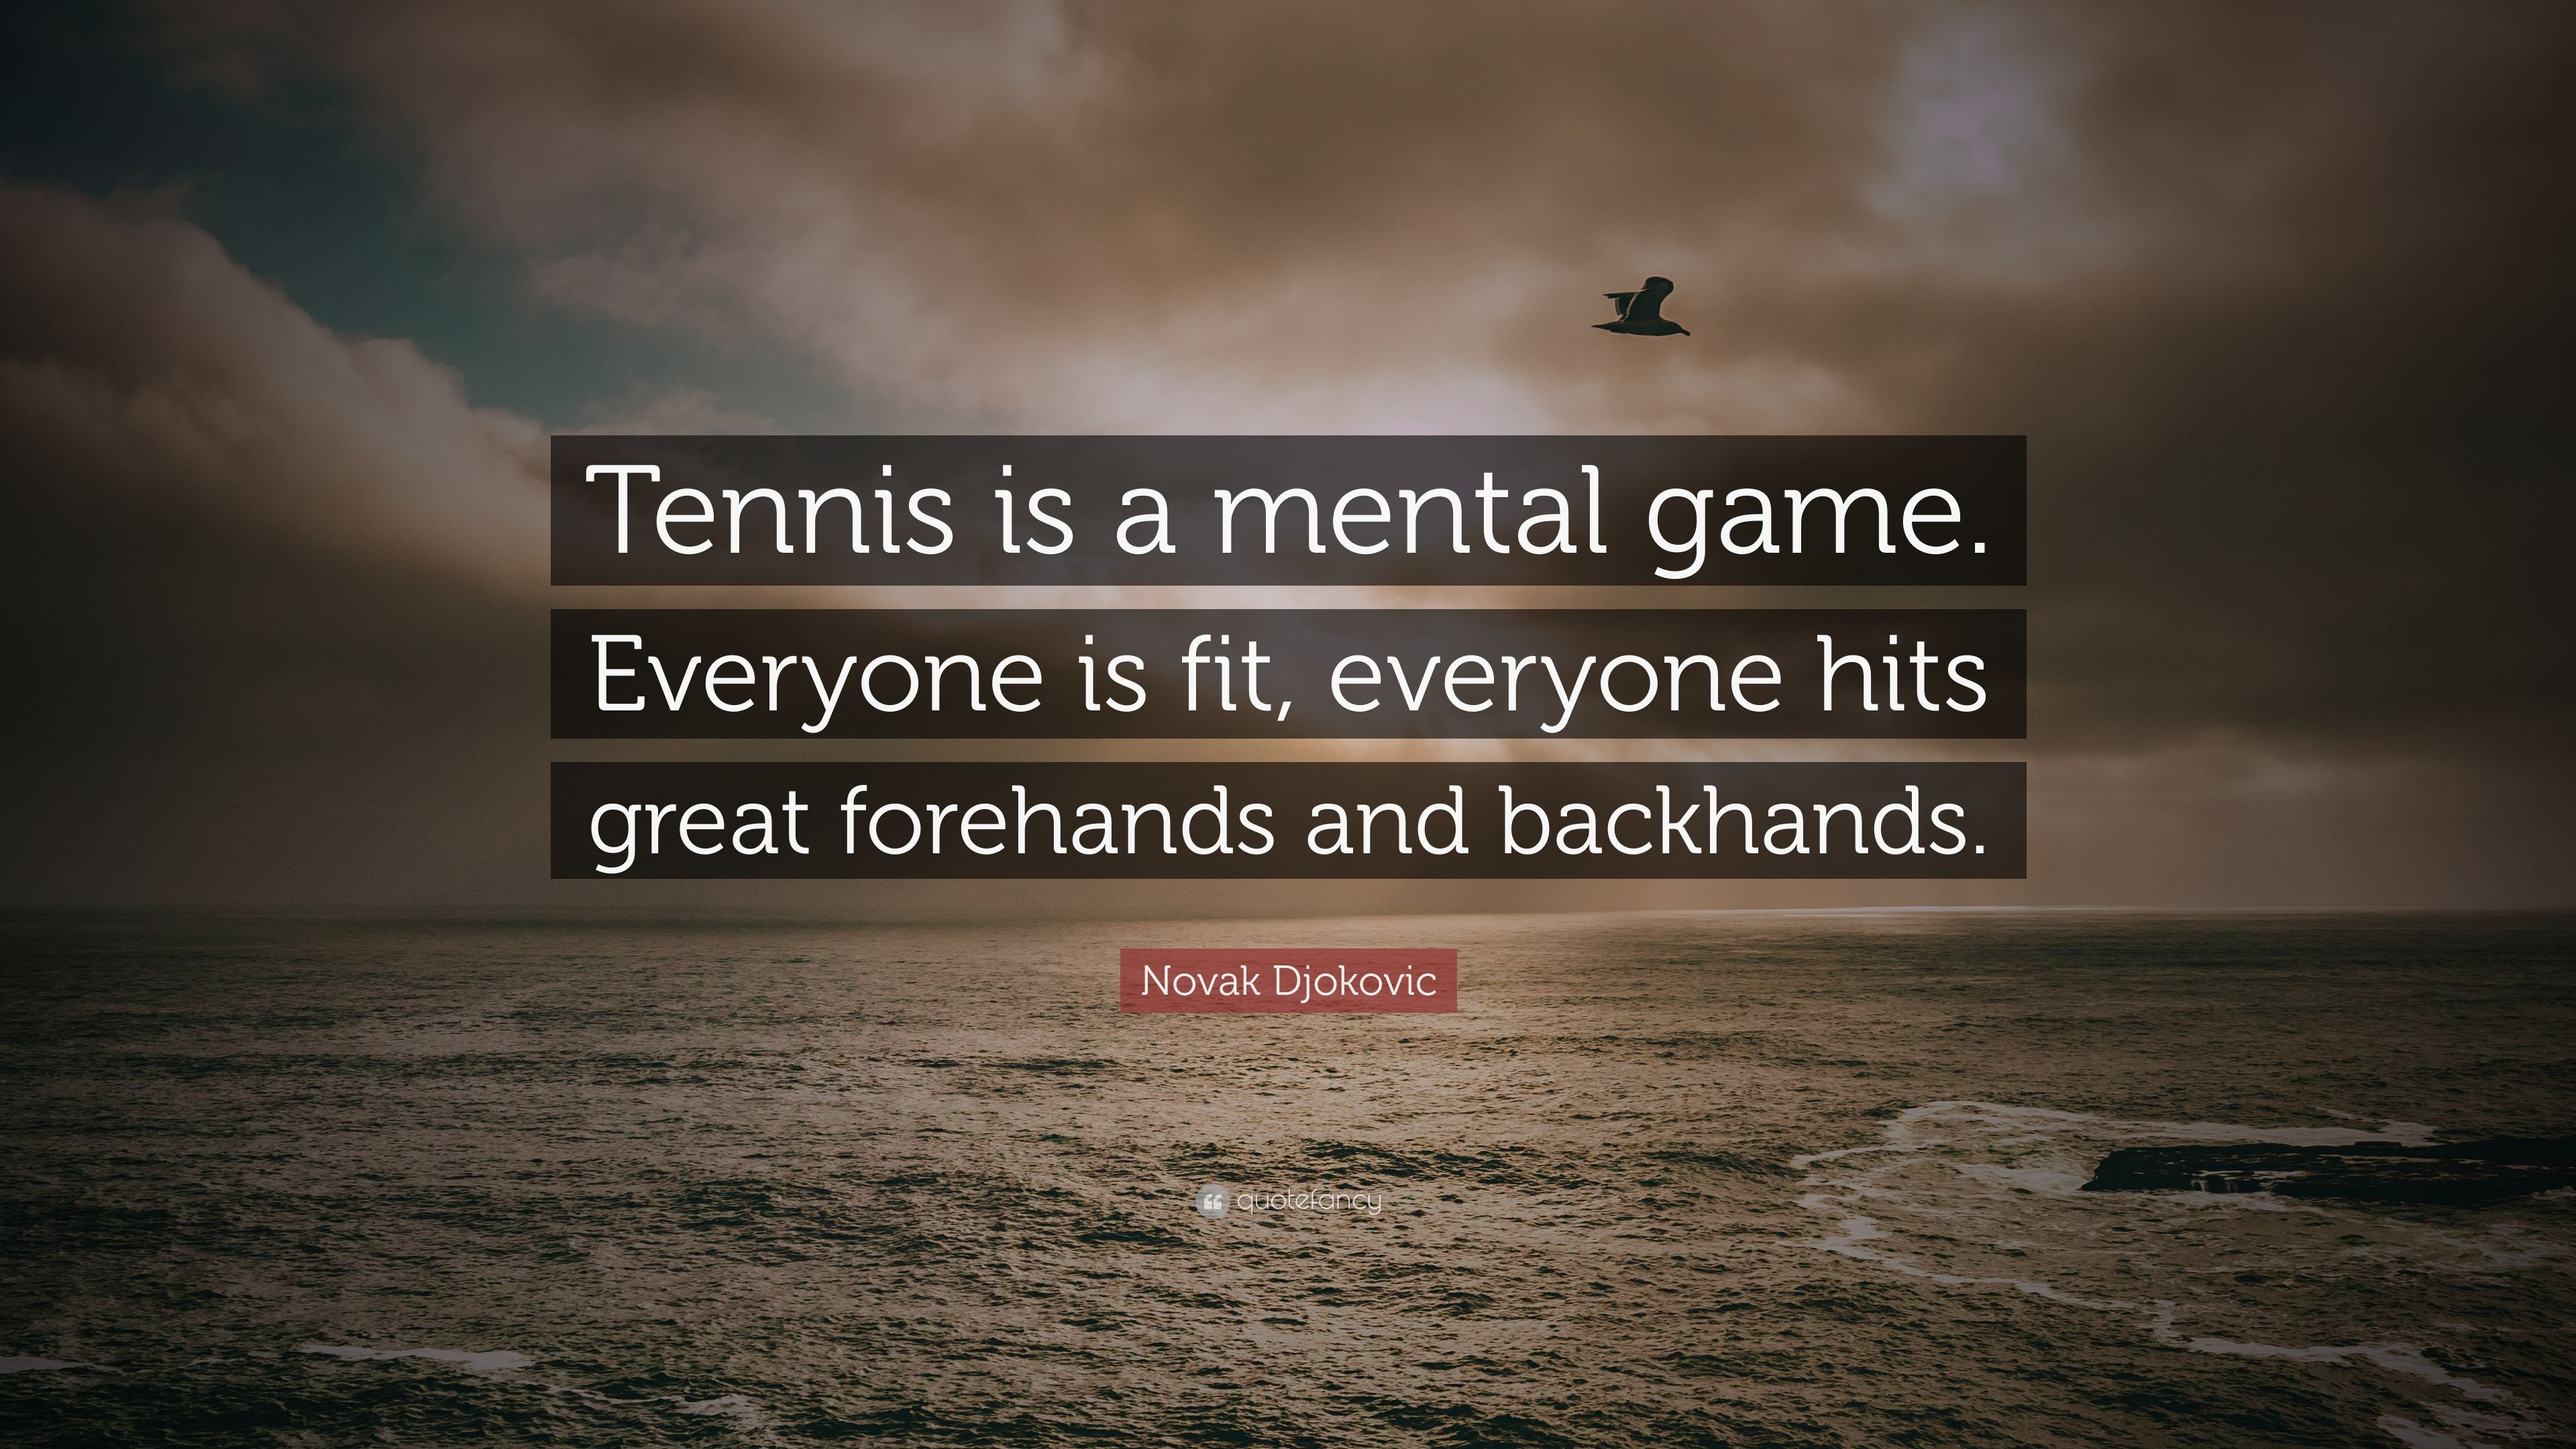 Novak Djokovic Quote Tennis Is A Mental Game Everyone Is Fit Everyone Hits Great Forehands And Backhands 12 Wallpapers Quotefancy